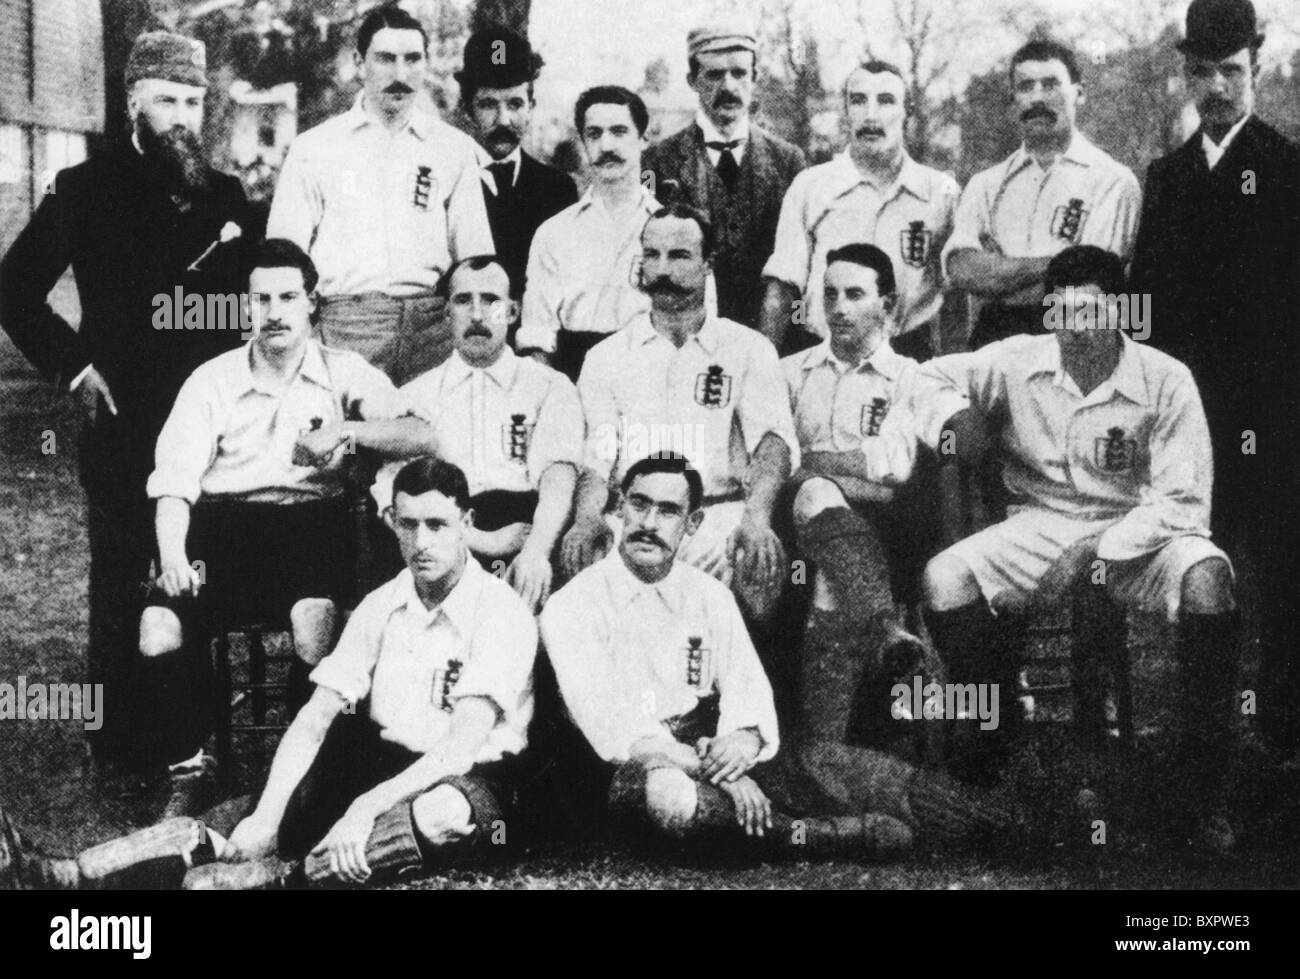 ENGLISH FOOTBALL TEAM who beat Scotland 5-2 at Richmond Athletic ground 1 April 1893 . See Description below - Stock Image